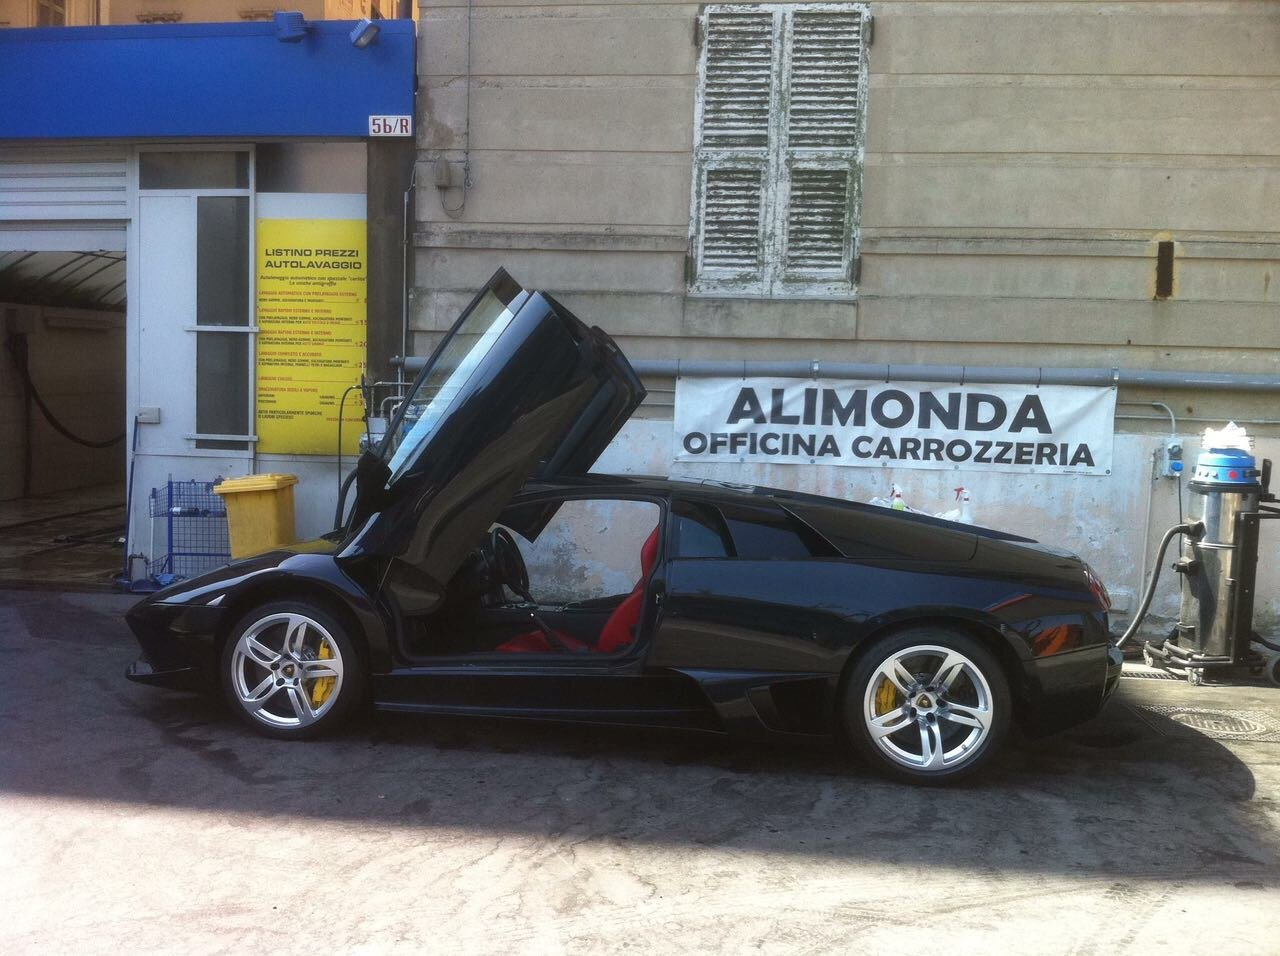 alimonda car wash